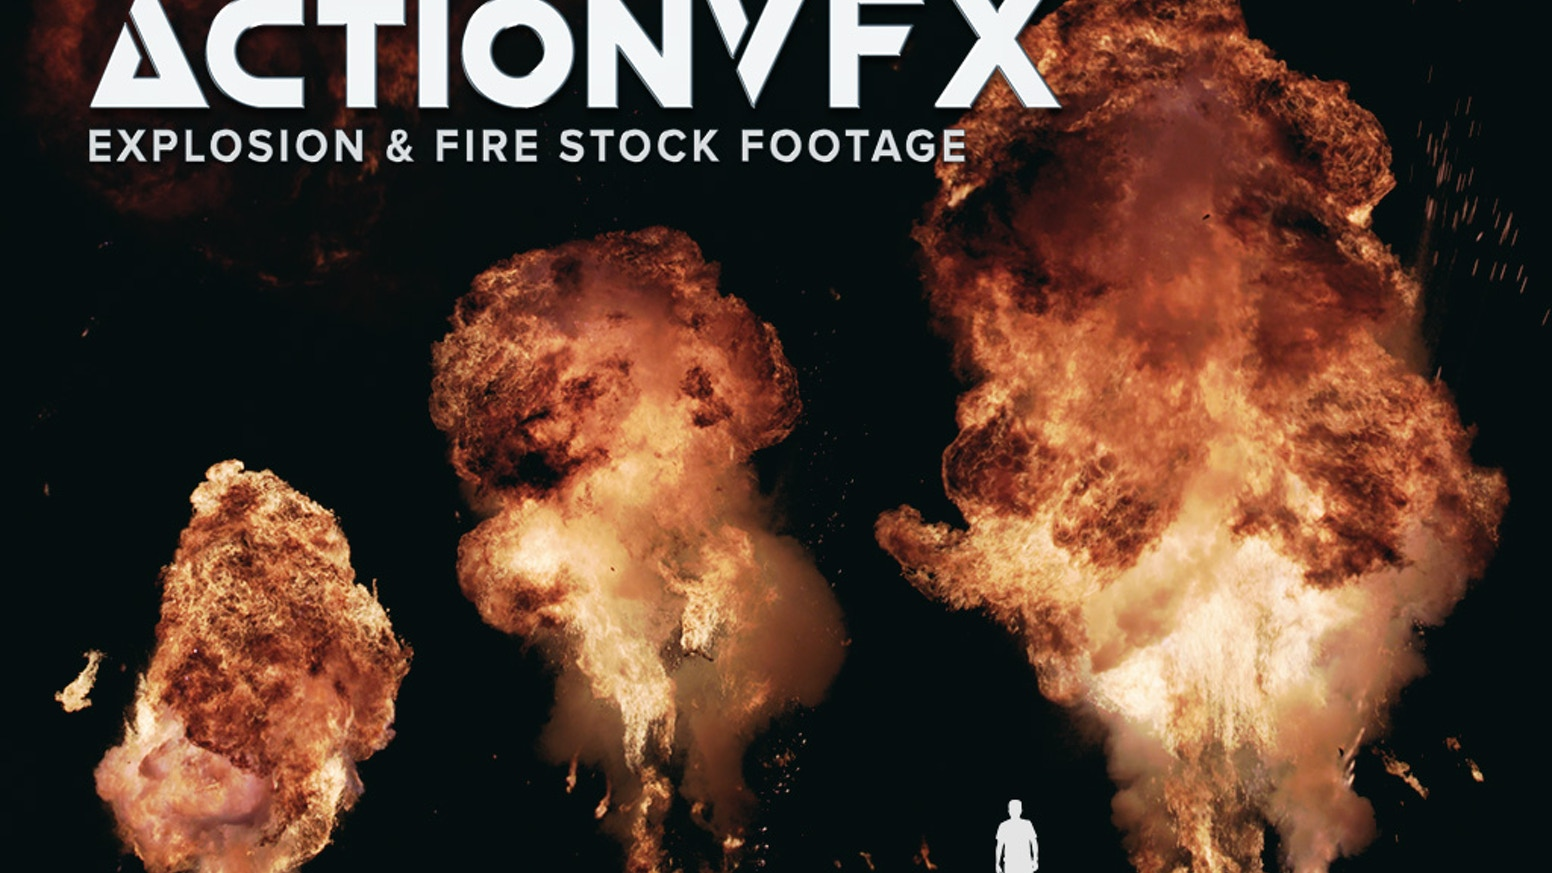 ActionVFX: Explosion and Fire Effects for your Movies by RodyPolis